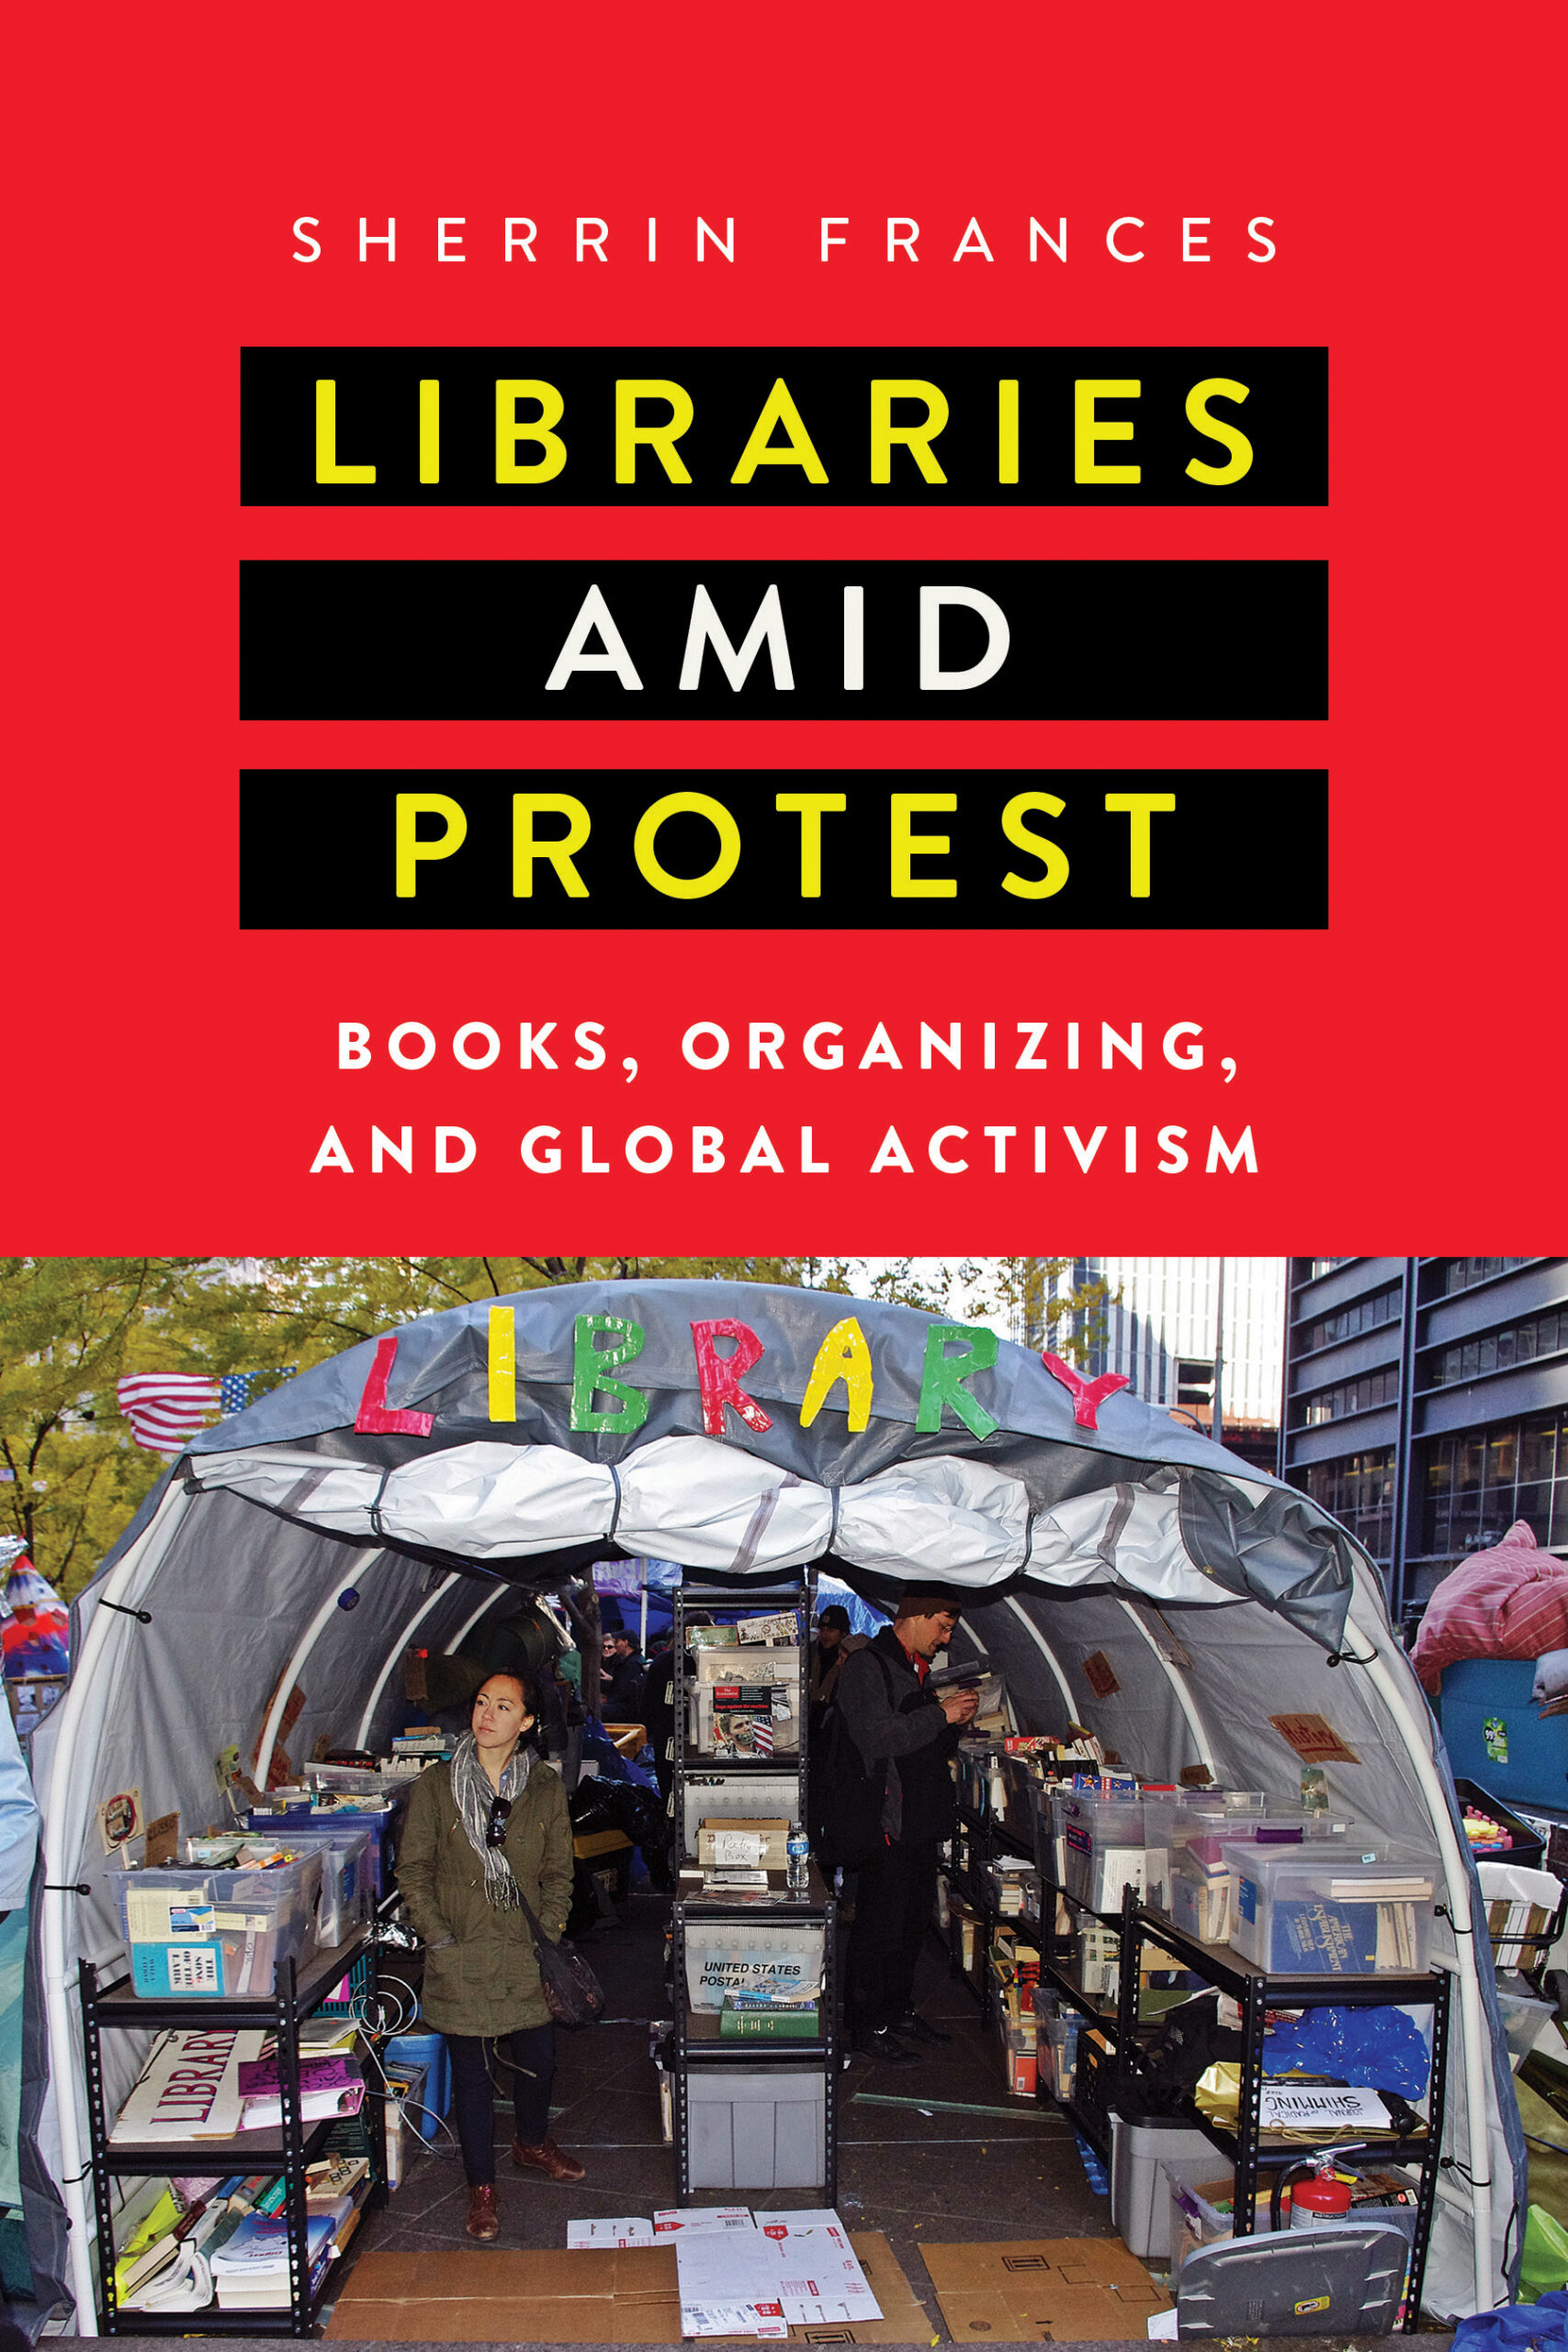 Image of Occupy Wall Street library